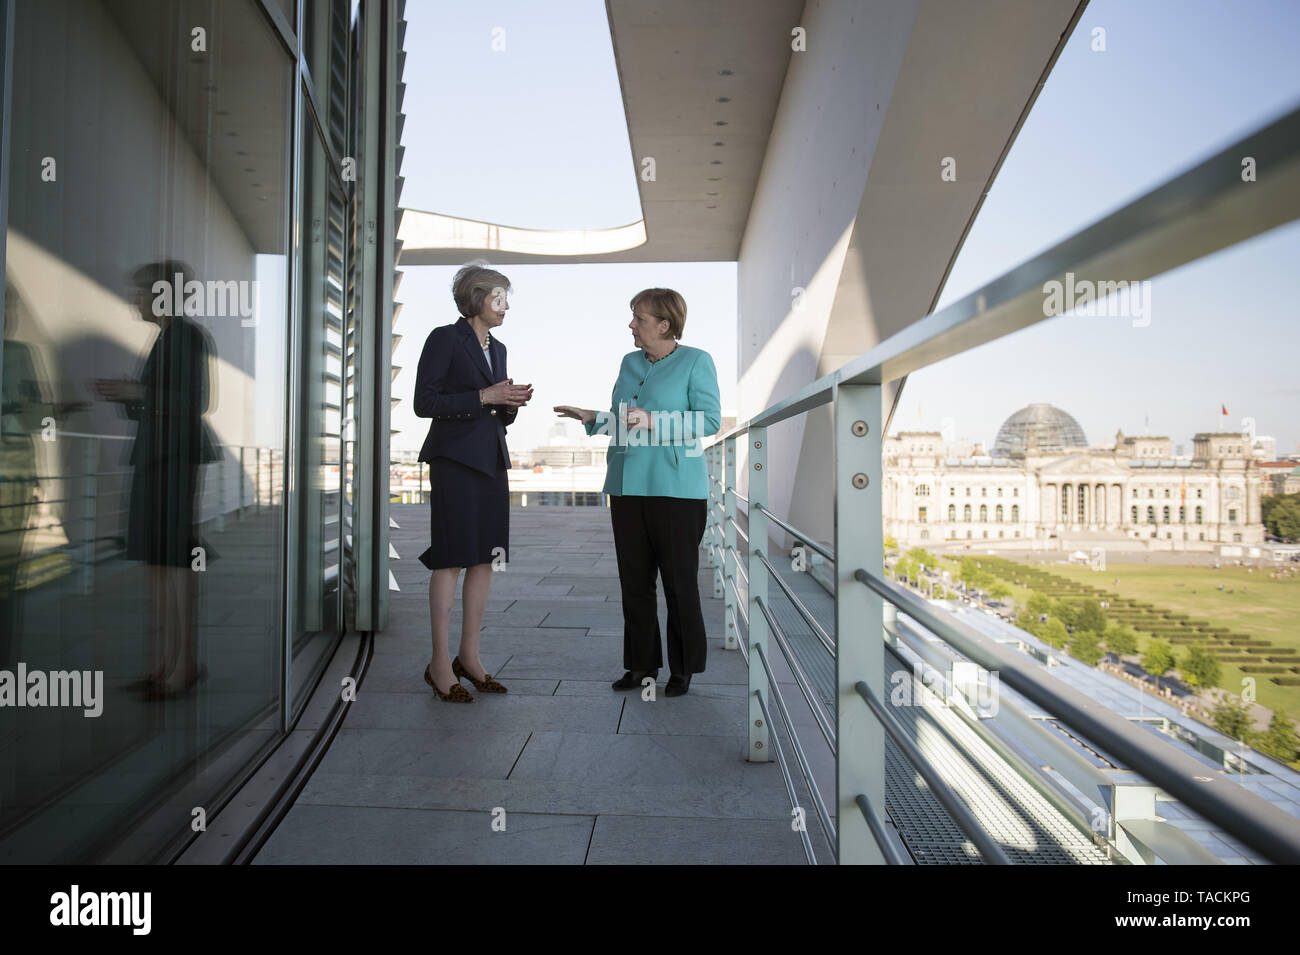 Berlin, Germany. 20th July, 2016. HANDOUT - A handout picture made available by the German Federal Government (Bundesregierung) shows German Chancellor Angela Merkel (R) and new British Prime Minister Theresa May holding wine glasses on the balcony during their meeting in the Federal Chancellery in Berlin, Germany, 20 July 2016. Credit: Guido Bergmann/Bundesregierung/dpa (ATTENTION EDITORS: EDITORIAL USE ONLY IN CONNECTION WITH CURRENT REPORTING/MANDATORY CREDITS: 'Guido Bergmann/Bundesregierung/dpa') | usage worldwide/dpa/Alamy Live News - Stock Image